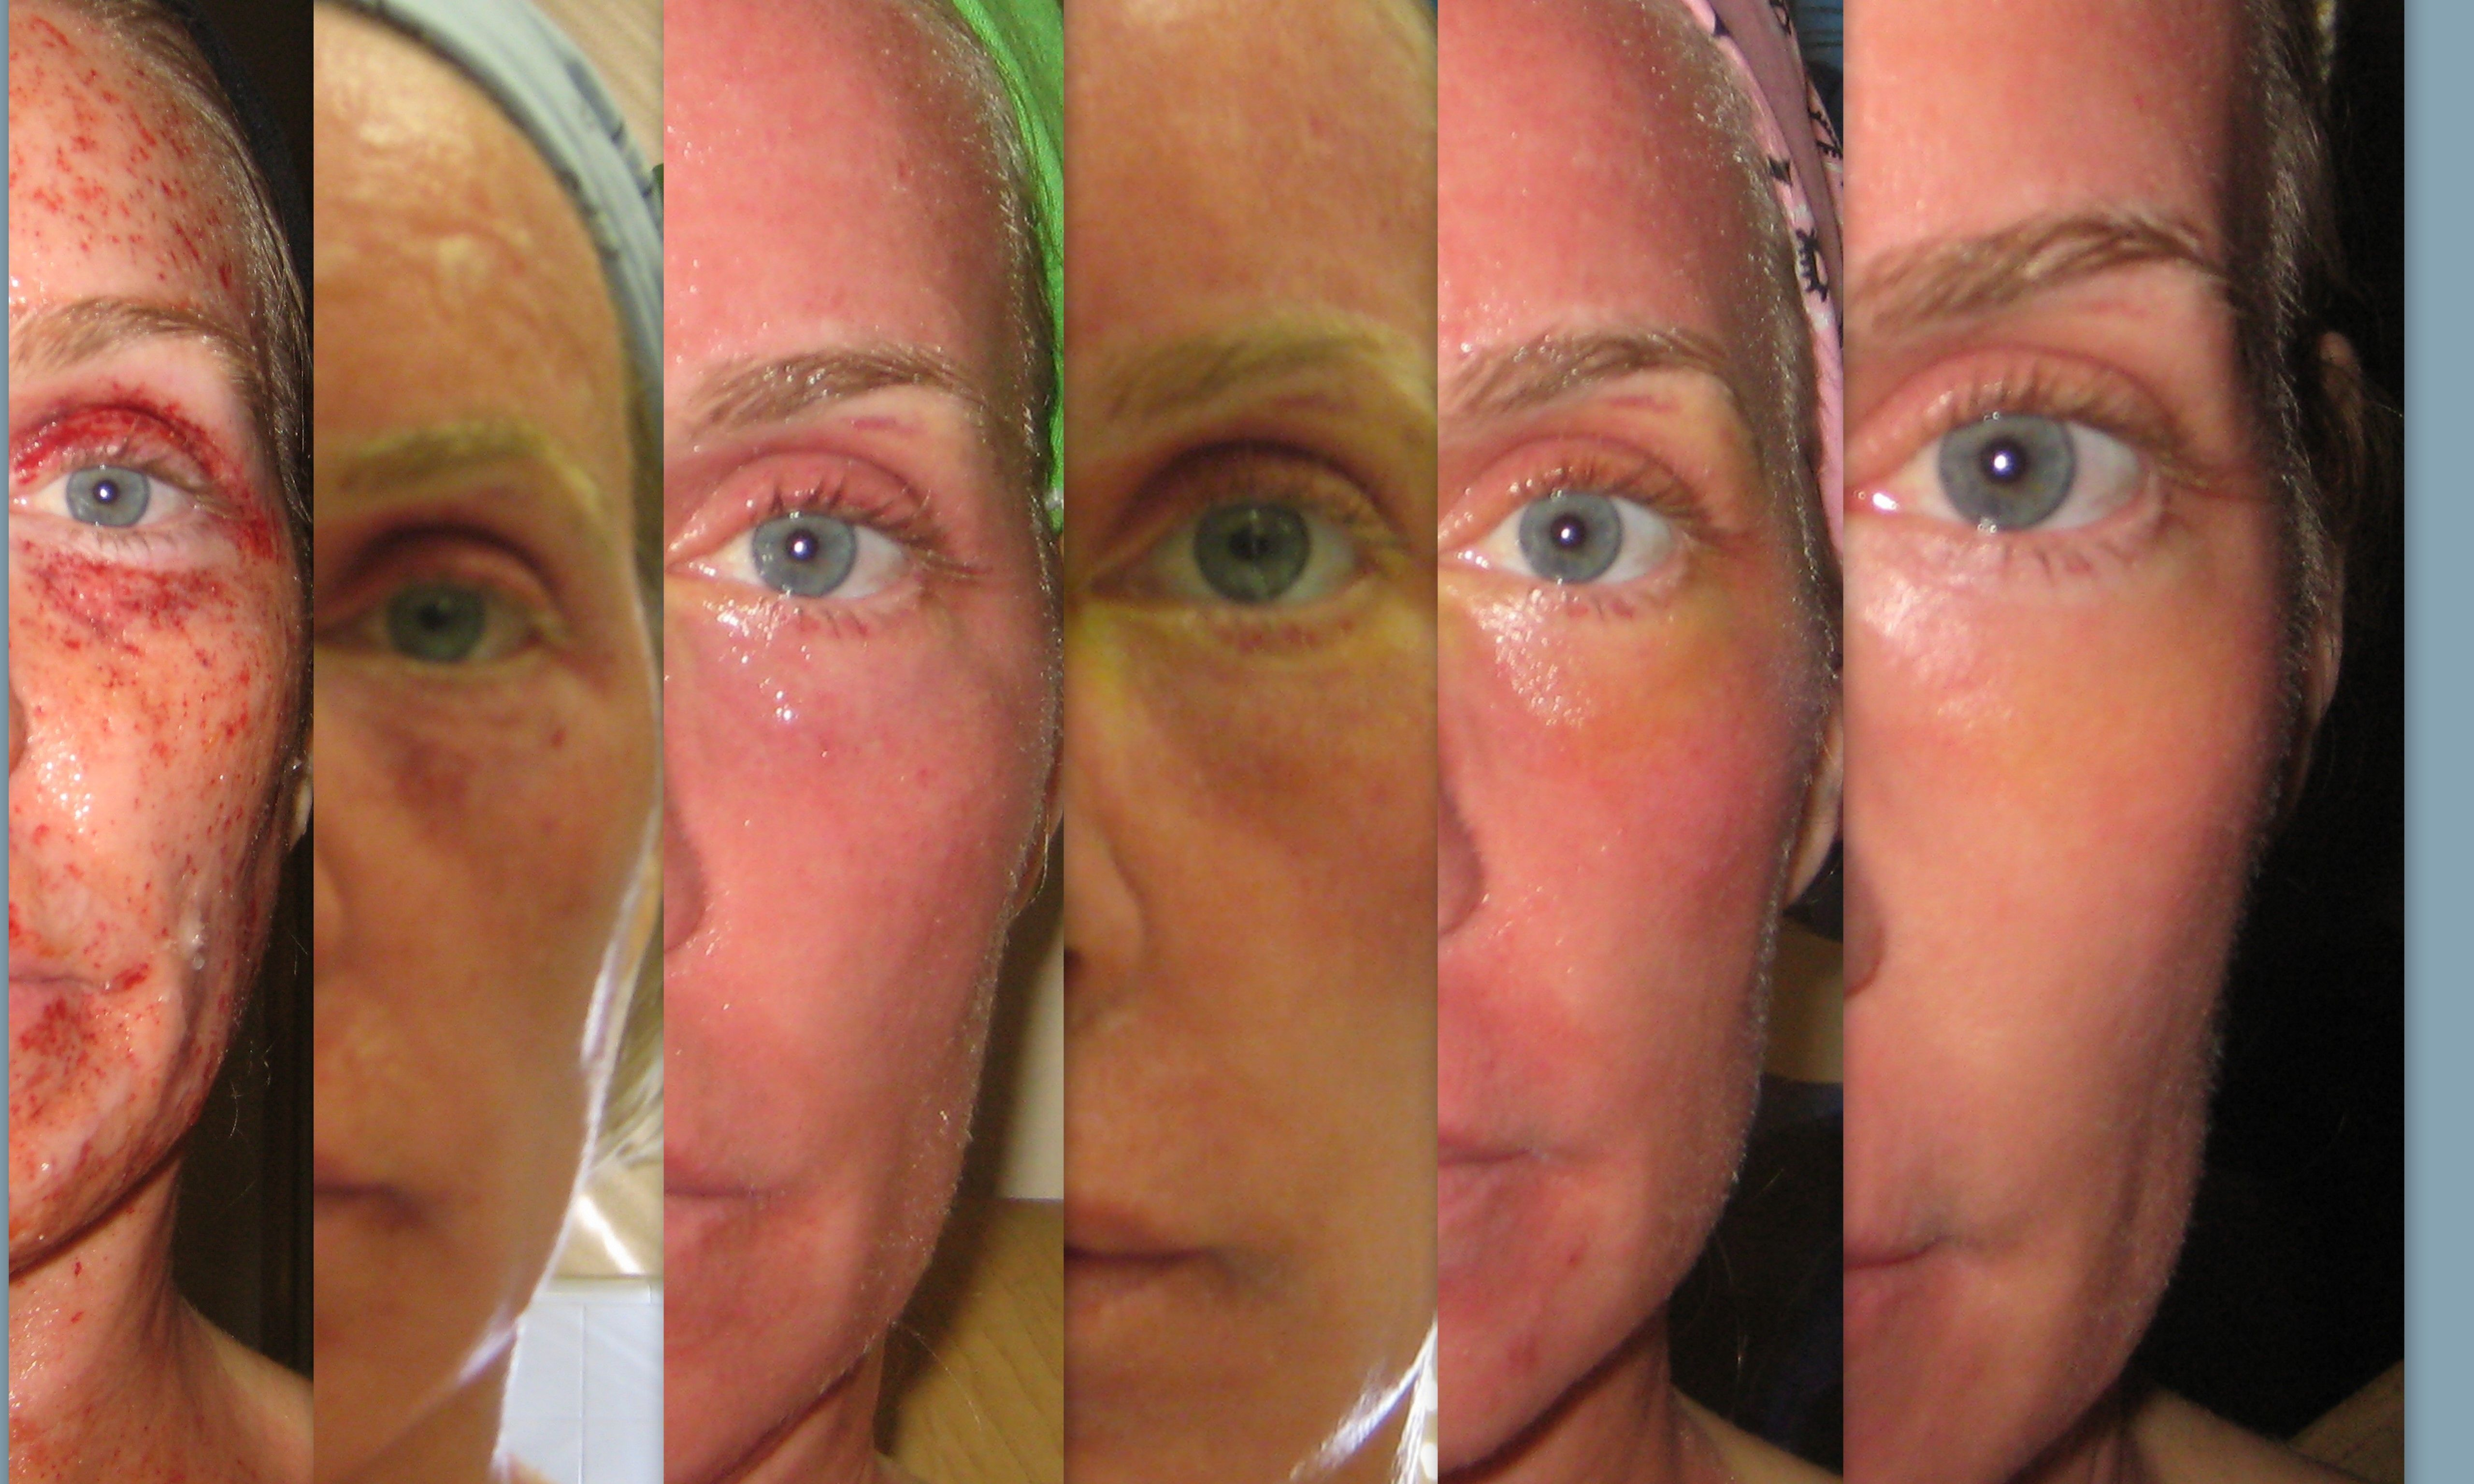 The Healing Process After Receiving Fraxel Co2 Laser Treatment